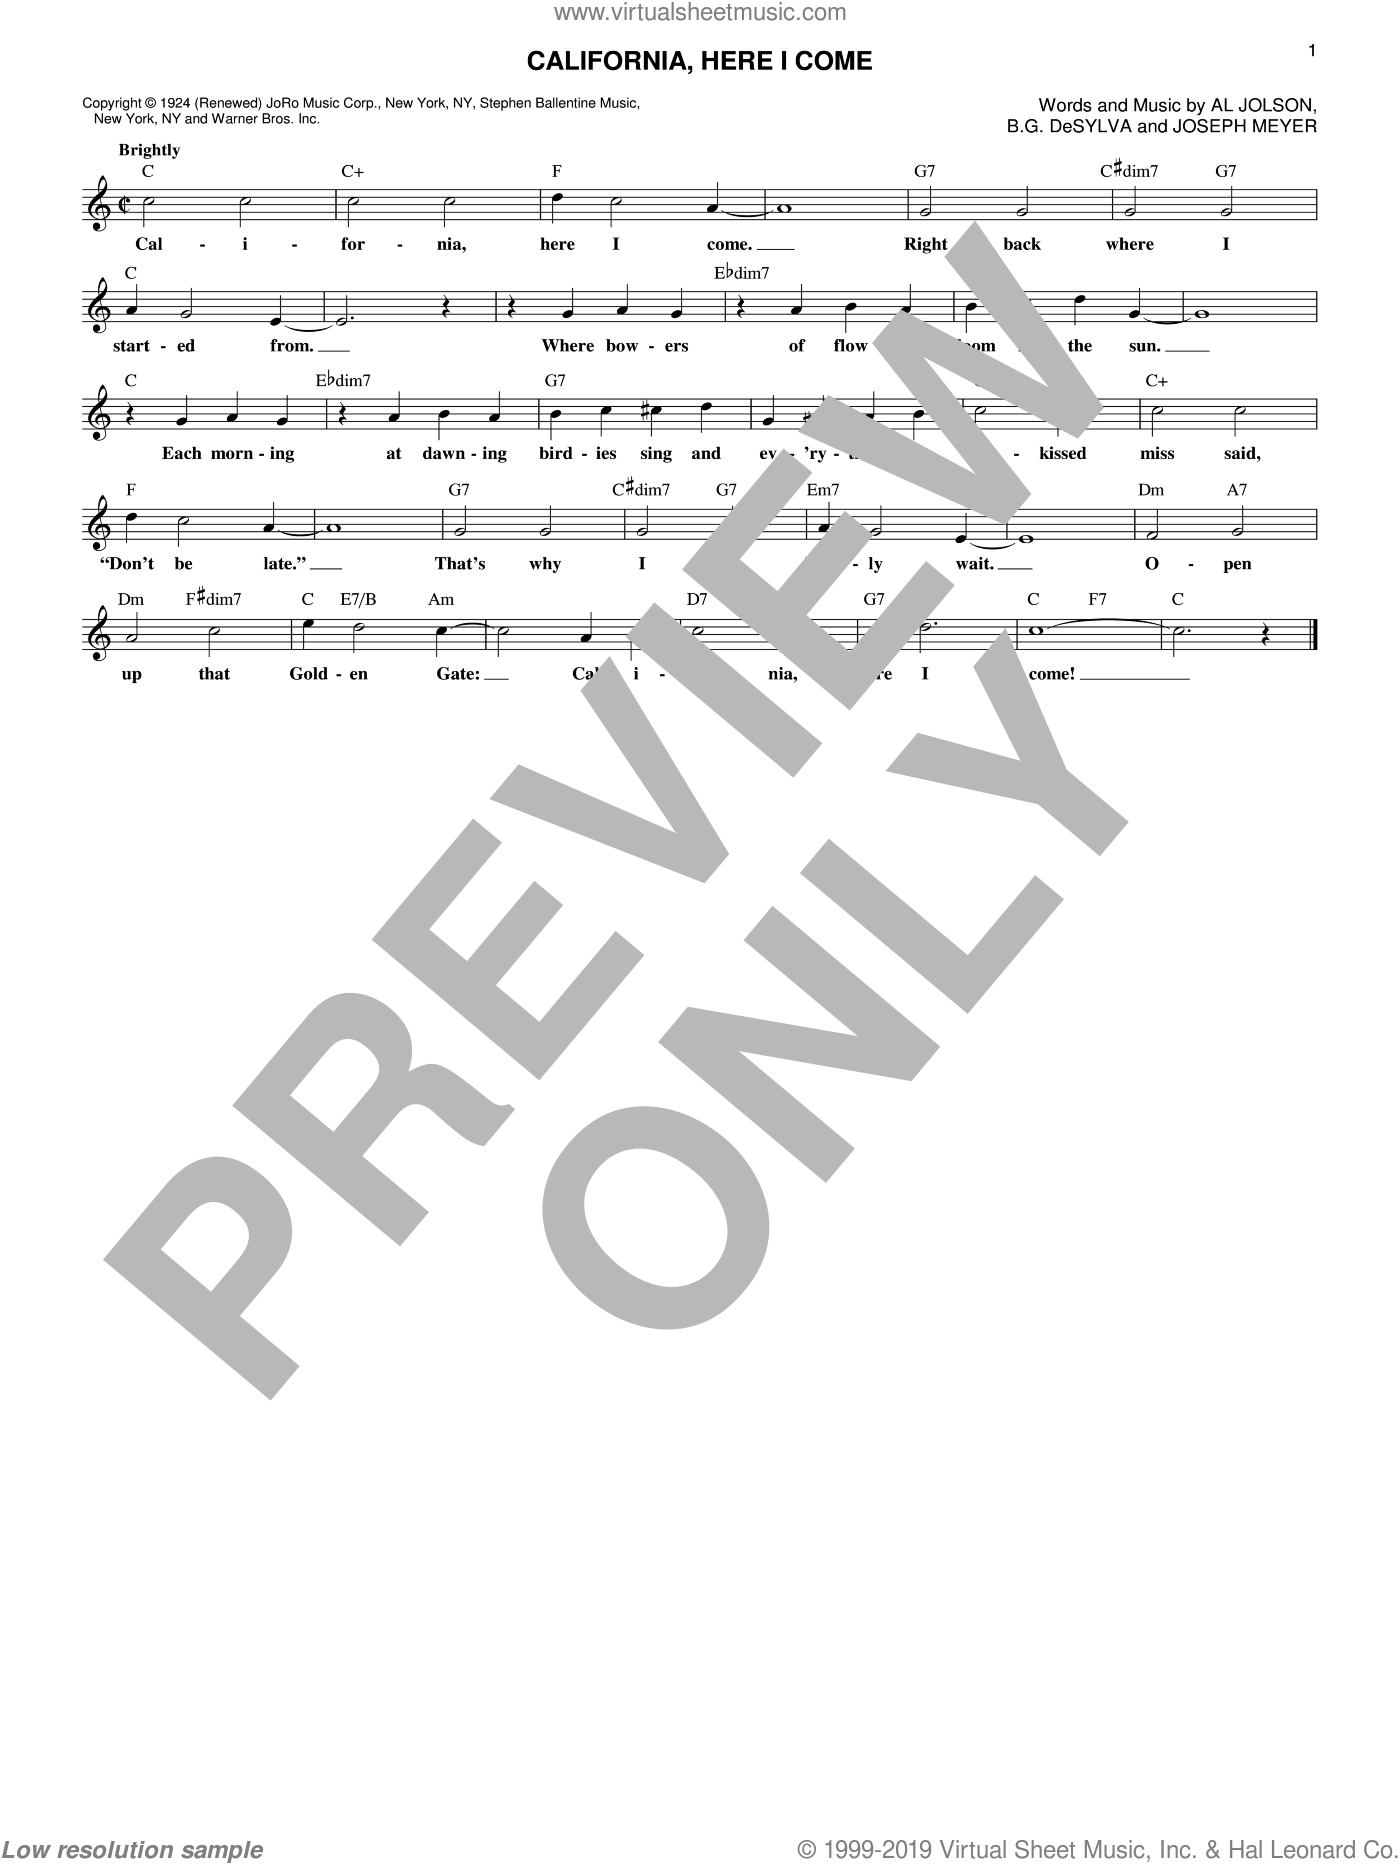 California, Here I Come sheet music for voice and other instruments (fake book) by Buddy DeSylva, Benny Goodman & His Orchestra, Al Jolson and Joseph Meyer, intermediate skill level